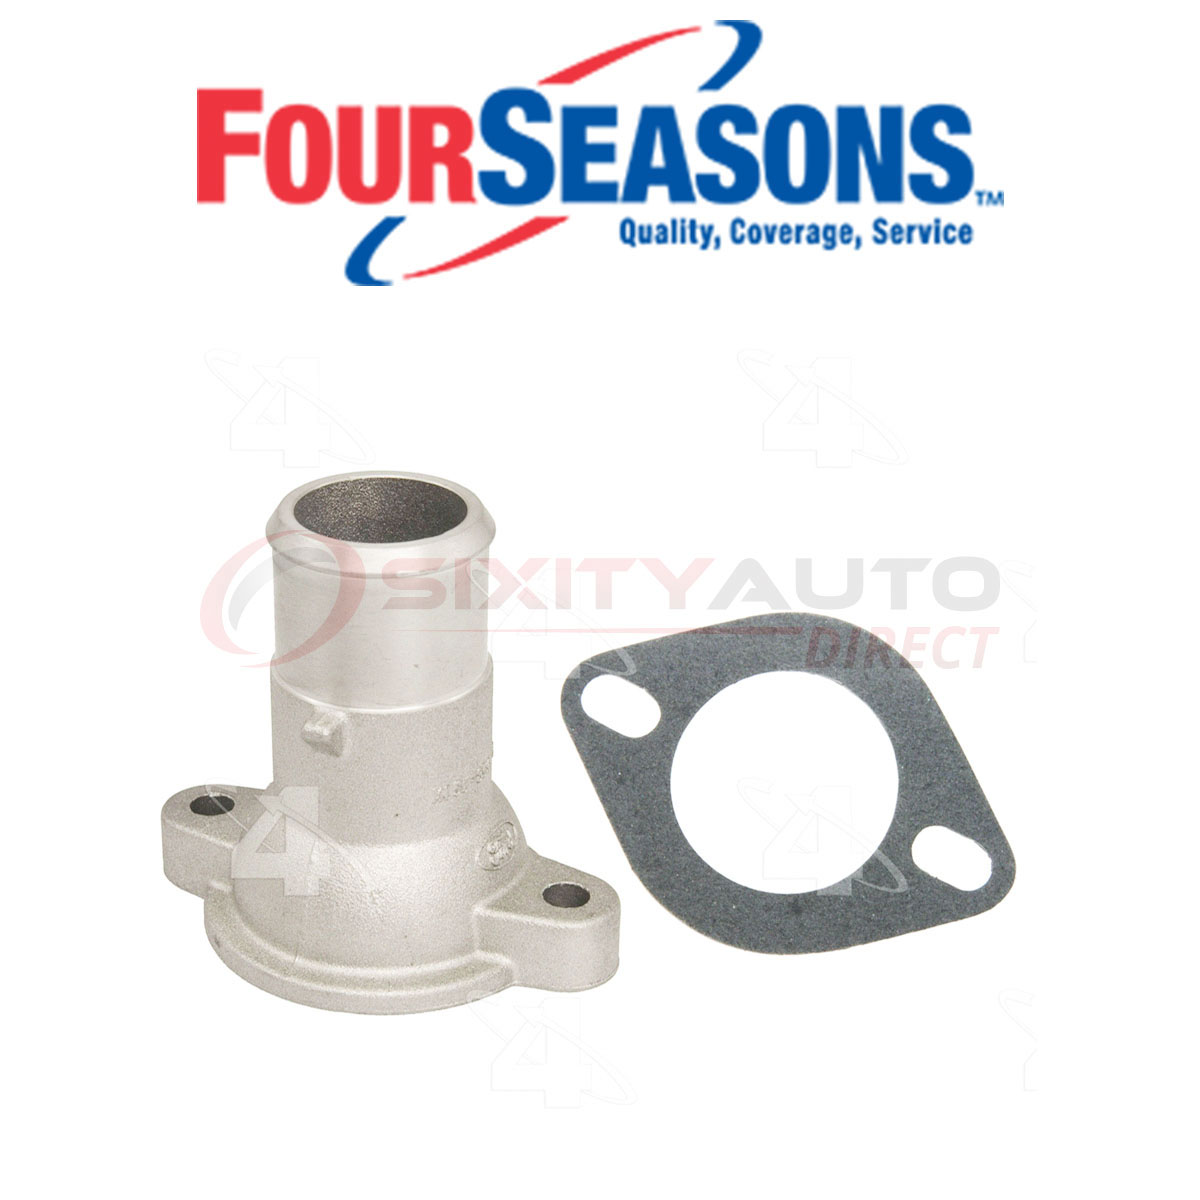 Four Seasons Coolant Water Outlet for 1994-1998 Mercury Villager 3.0L V6 cw